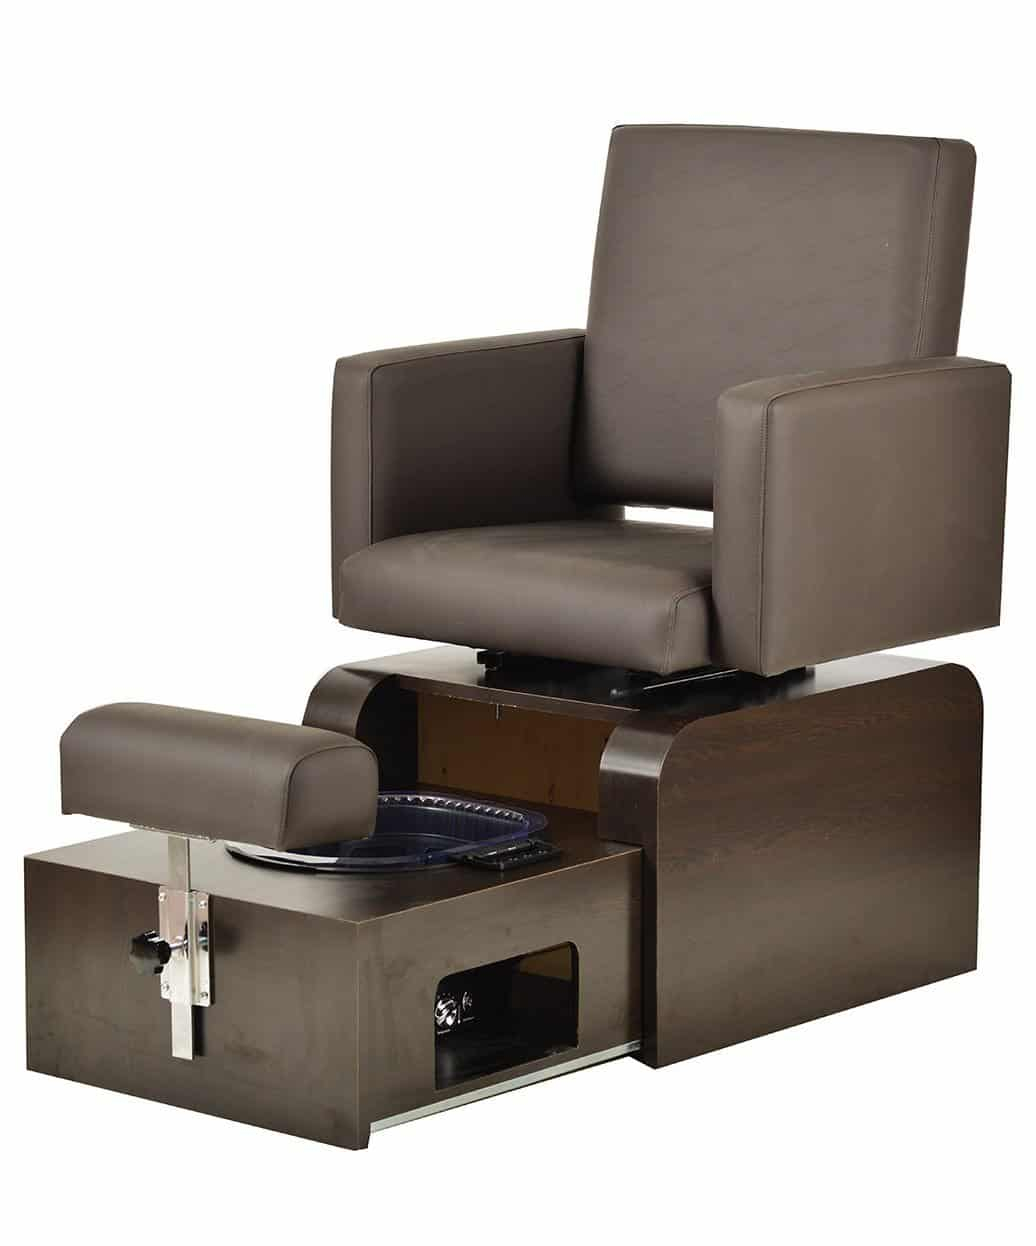 Best Pedicure Chairs For Sale | Ultimate Top 5 Reviews With Regard To Sofa Pedicure Chairs (View 3 of 15)